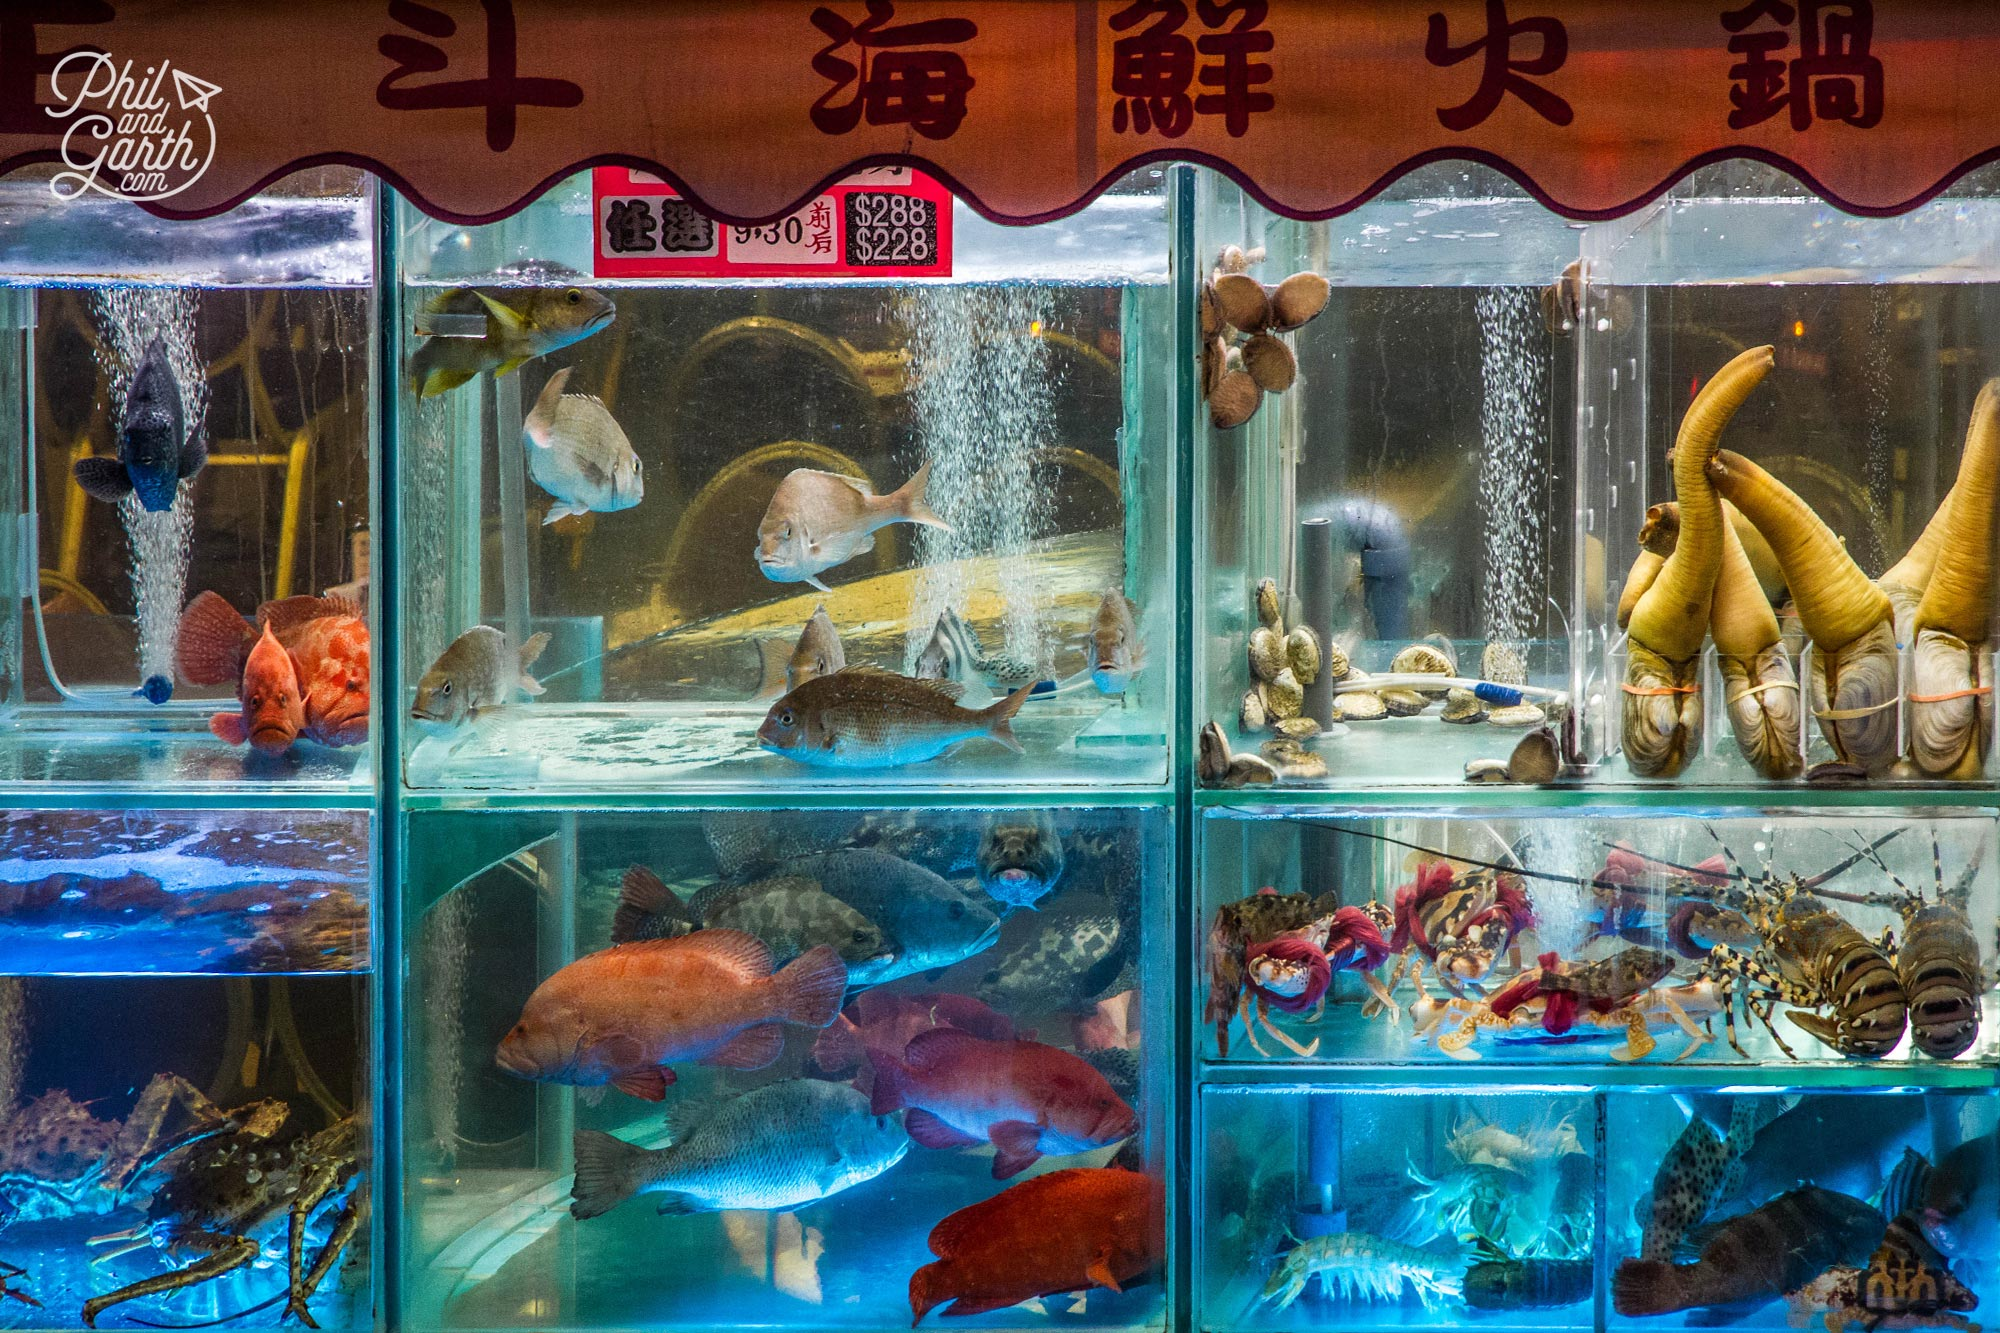 Spot the scary looking fish for sale!